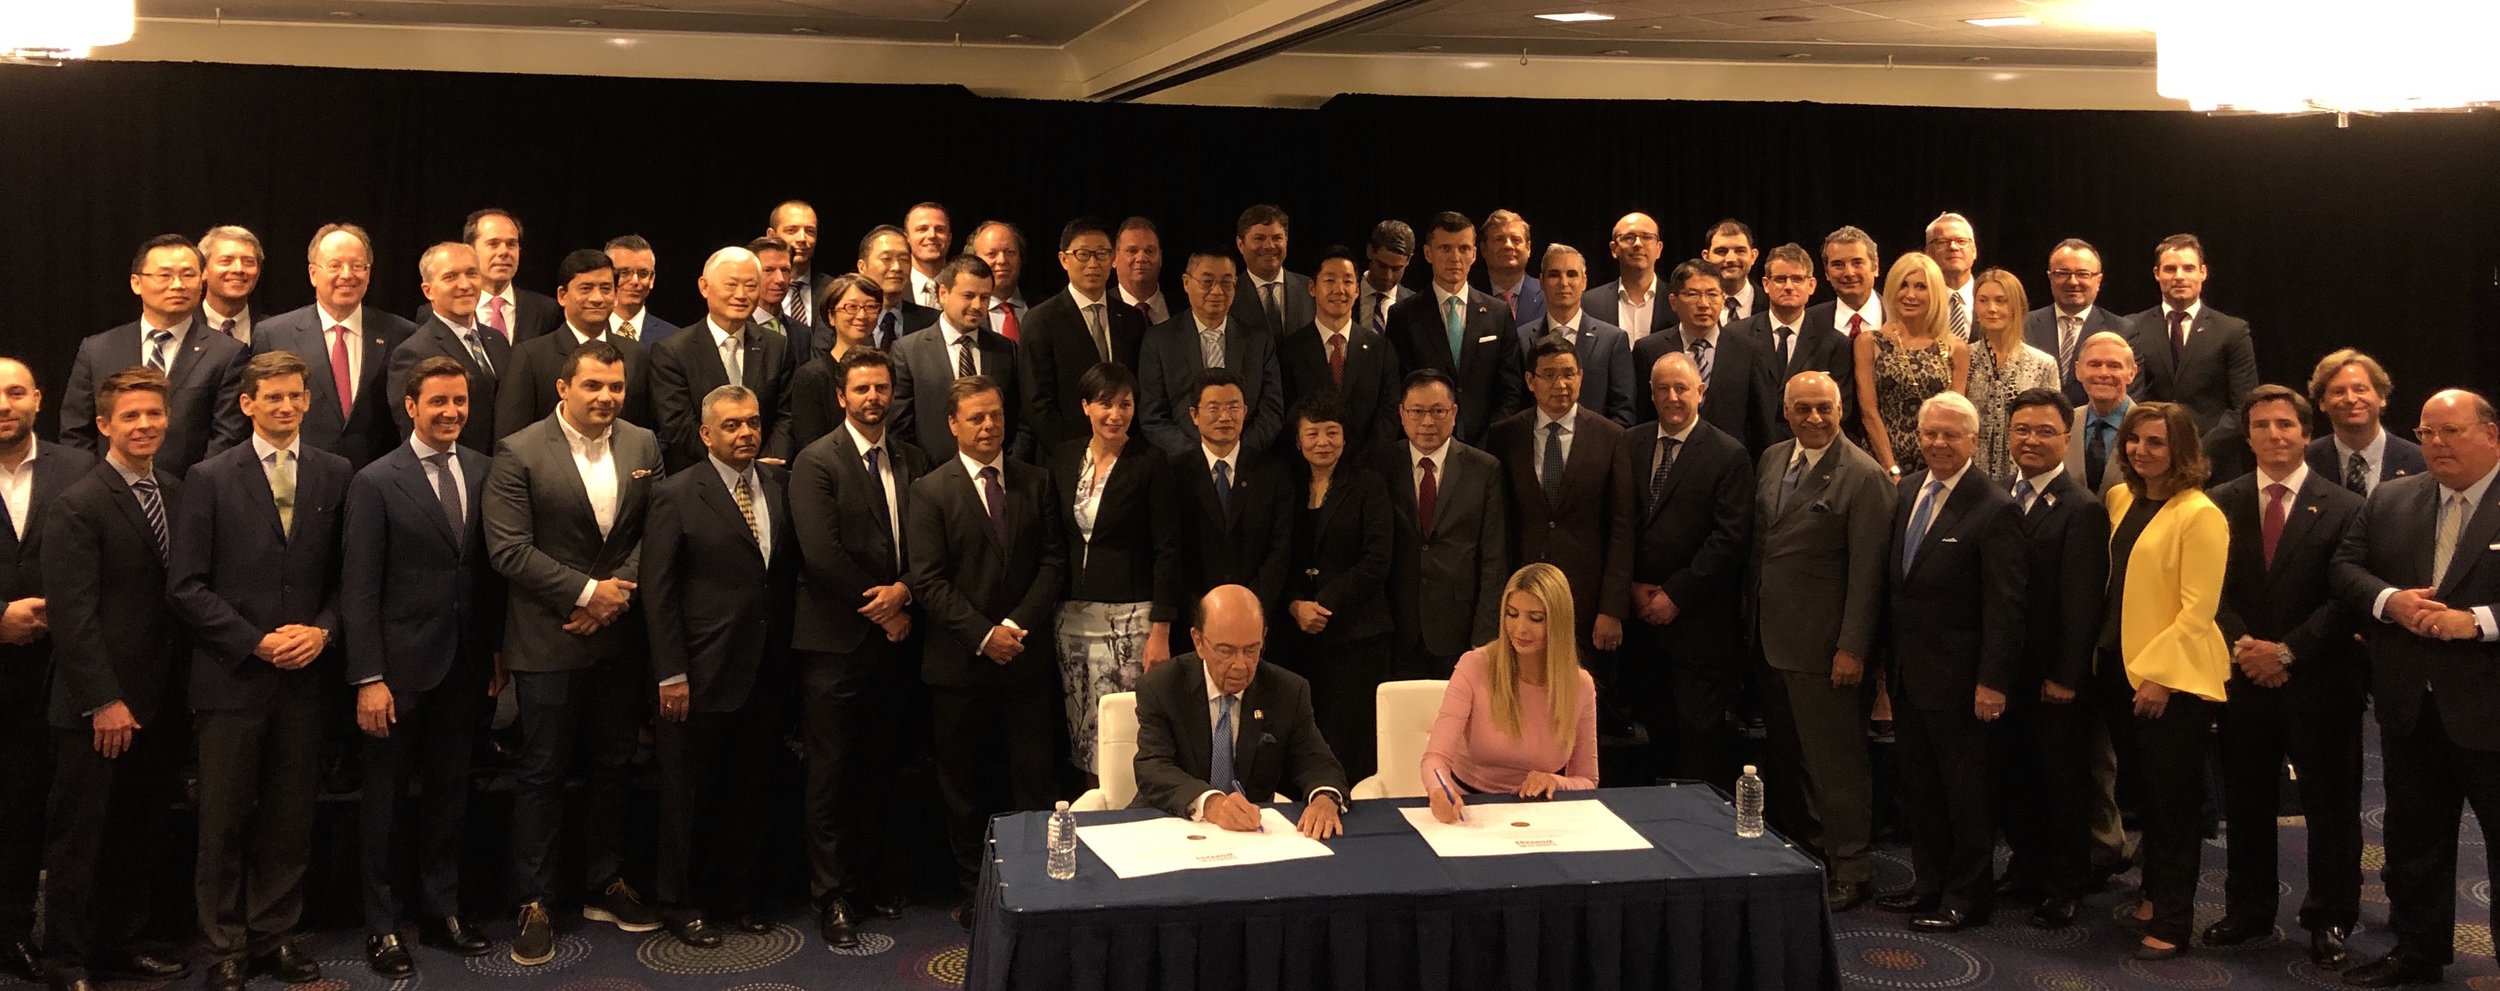 U.S. Secretary of Commerce Wilbur Ross and Advisor to the President Ivanka Trump join more than 65 global companies to sign the  Pledge to America's Workers , June 12, 2019 (c) U.S. Department of Commerce ( read the blog post )